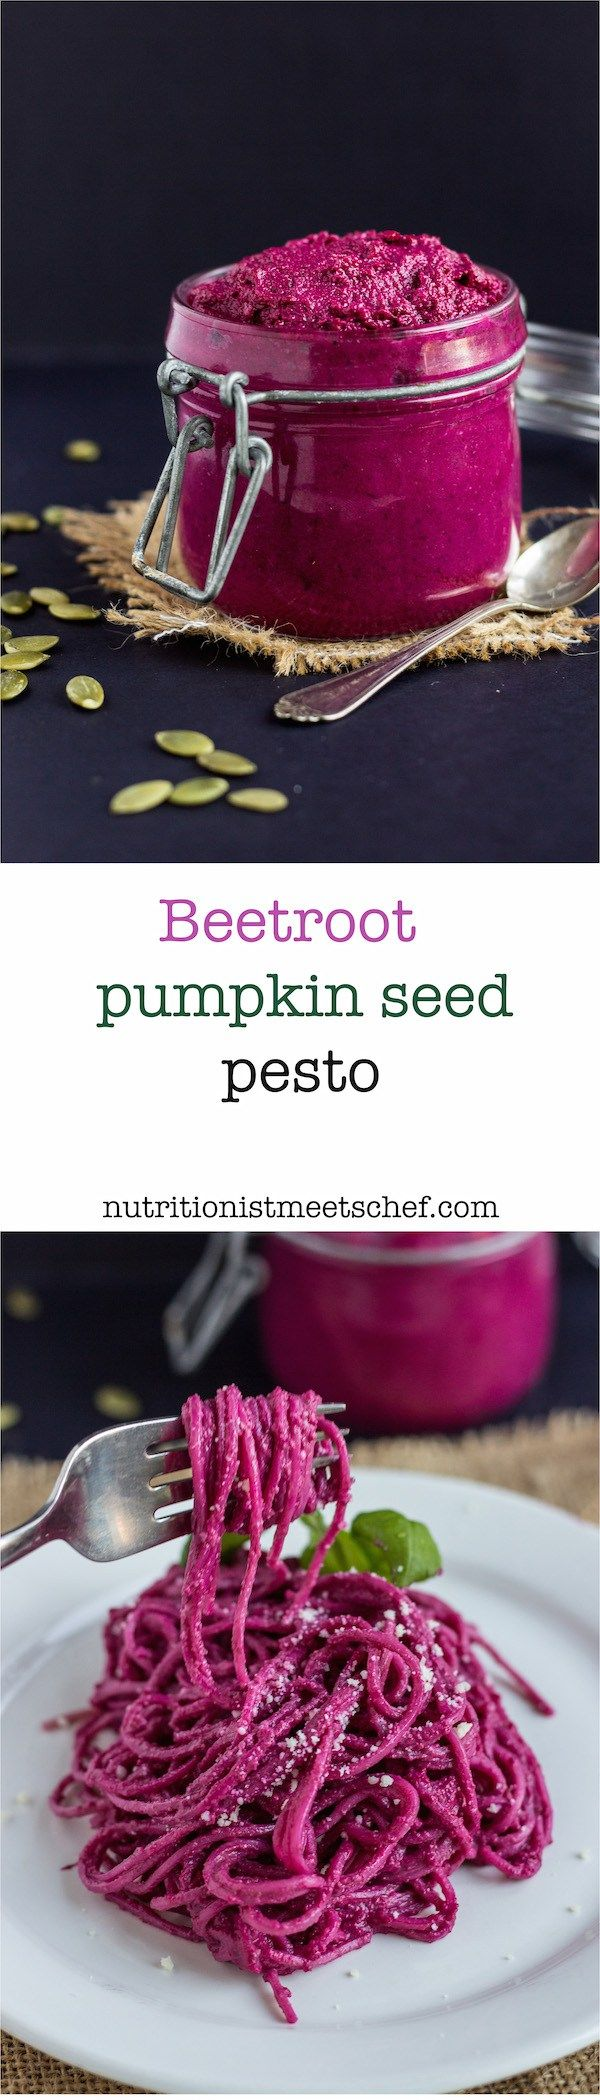 A vibrant and flavoursome beetroot pumpkin seed pesto. Great with chicken, pasta or add it to your salad.